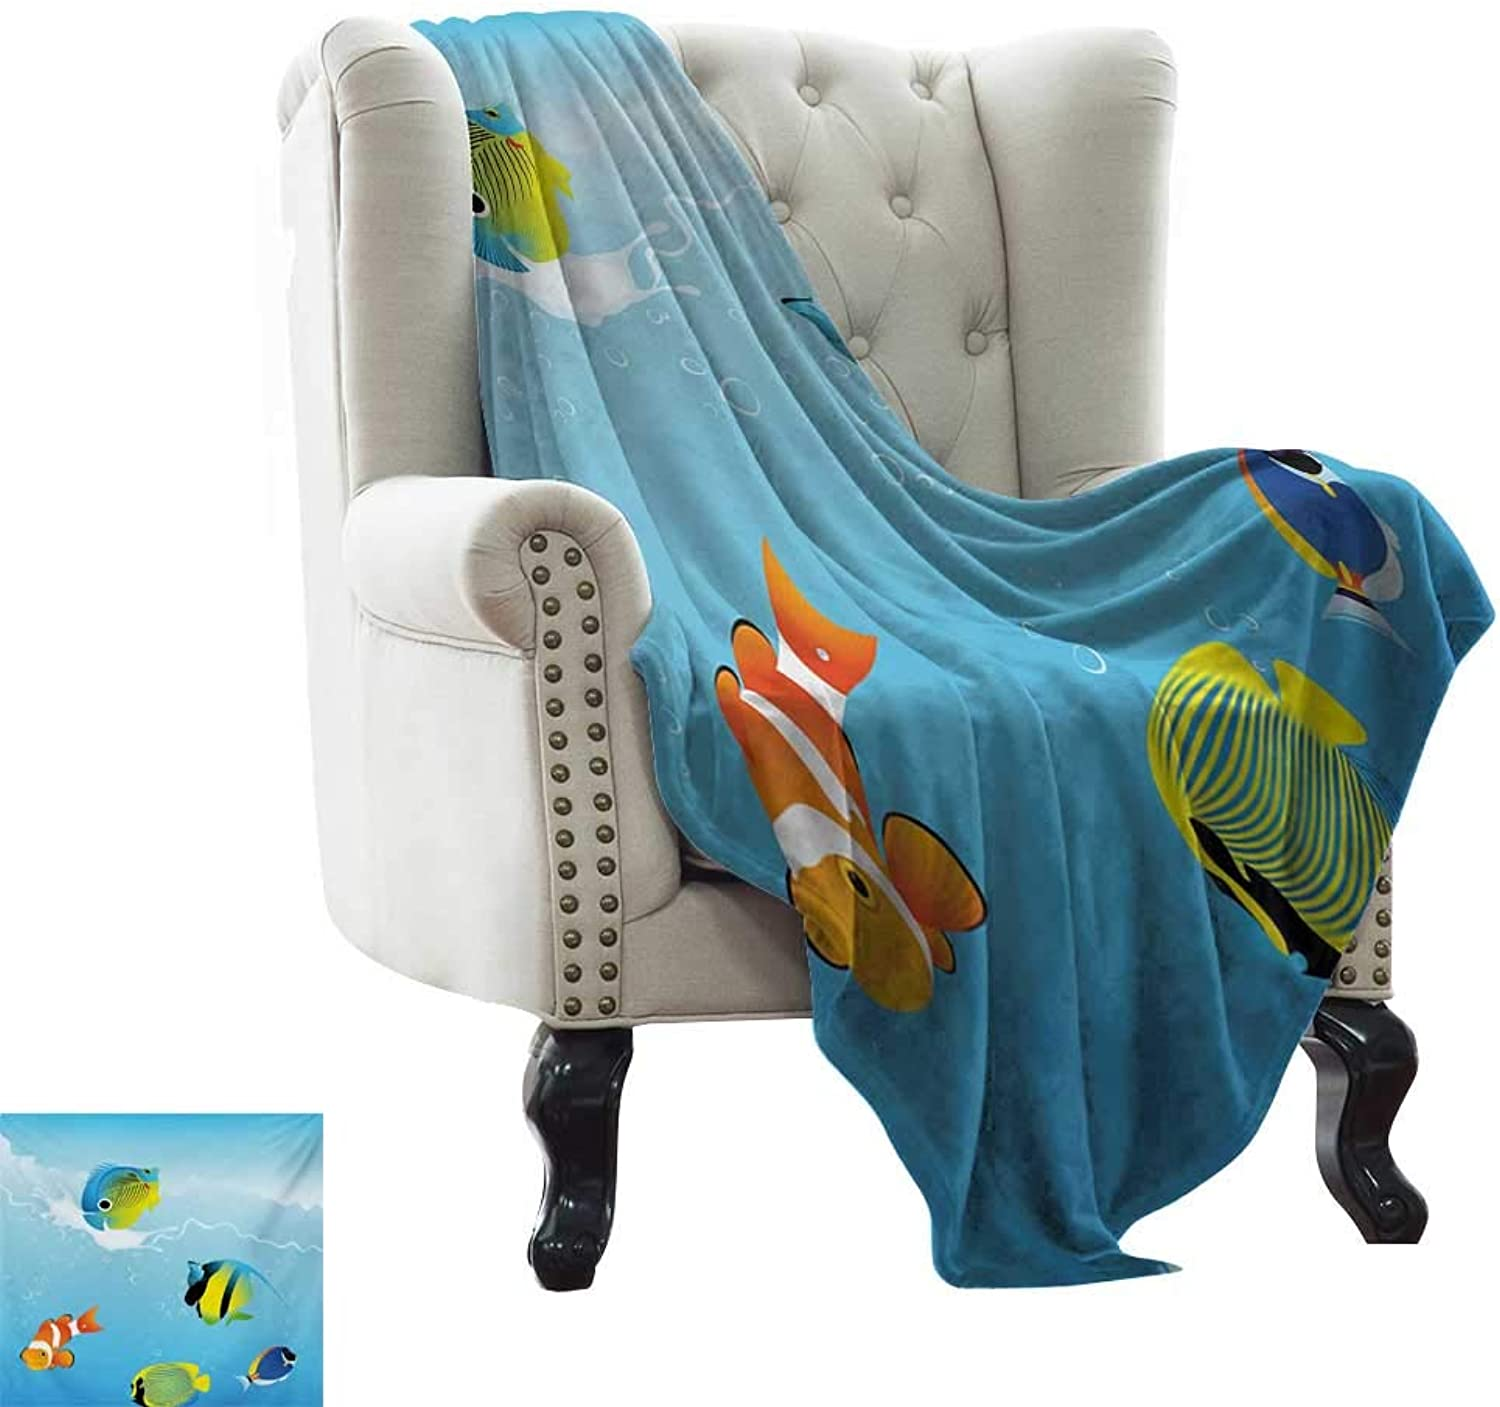 Weighted Blanket for Kids Ocean,Nautical Navy Deep Sealife Image with Exotic Tropical Exotic Little Fish,bluee orange and Yellow Super Soft Light Weight Cozy Warm Plush 60 x62